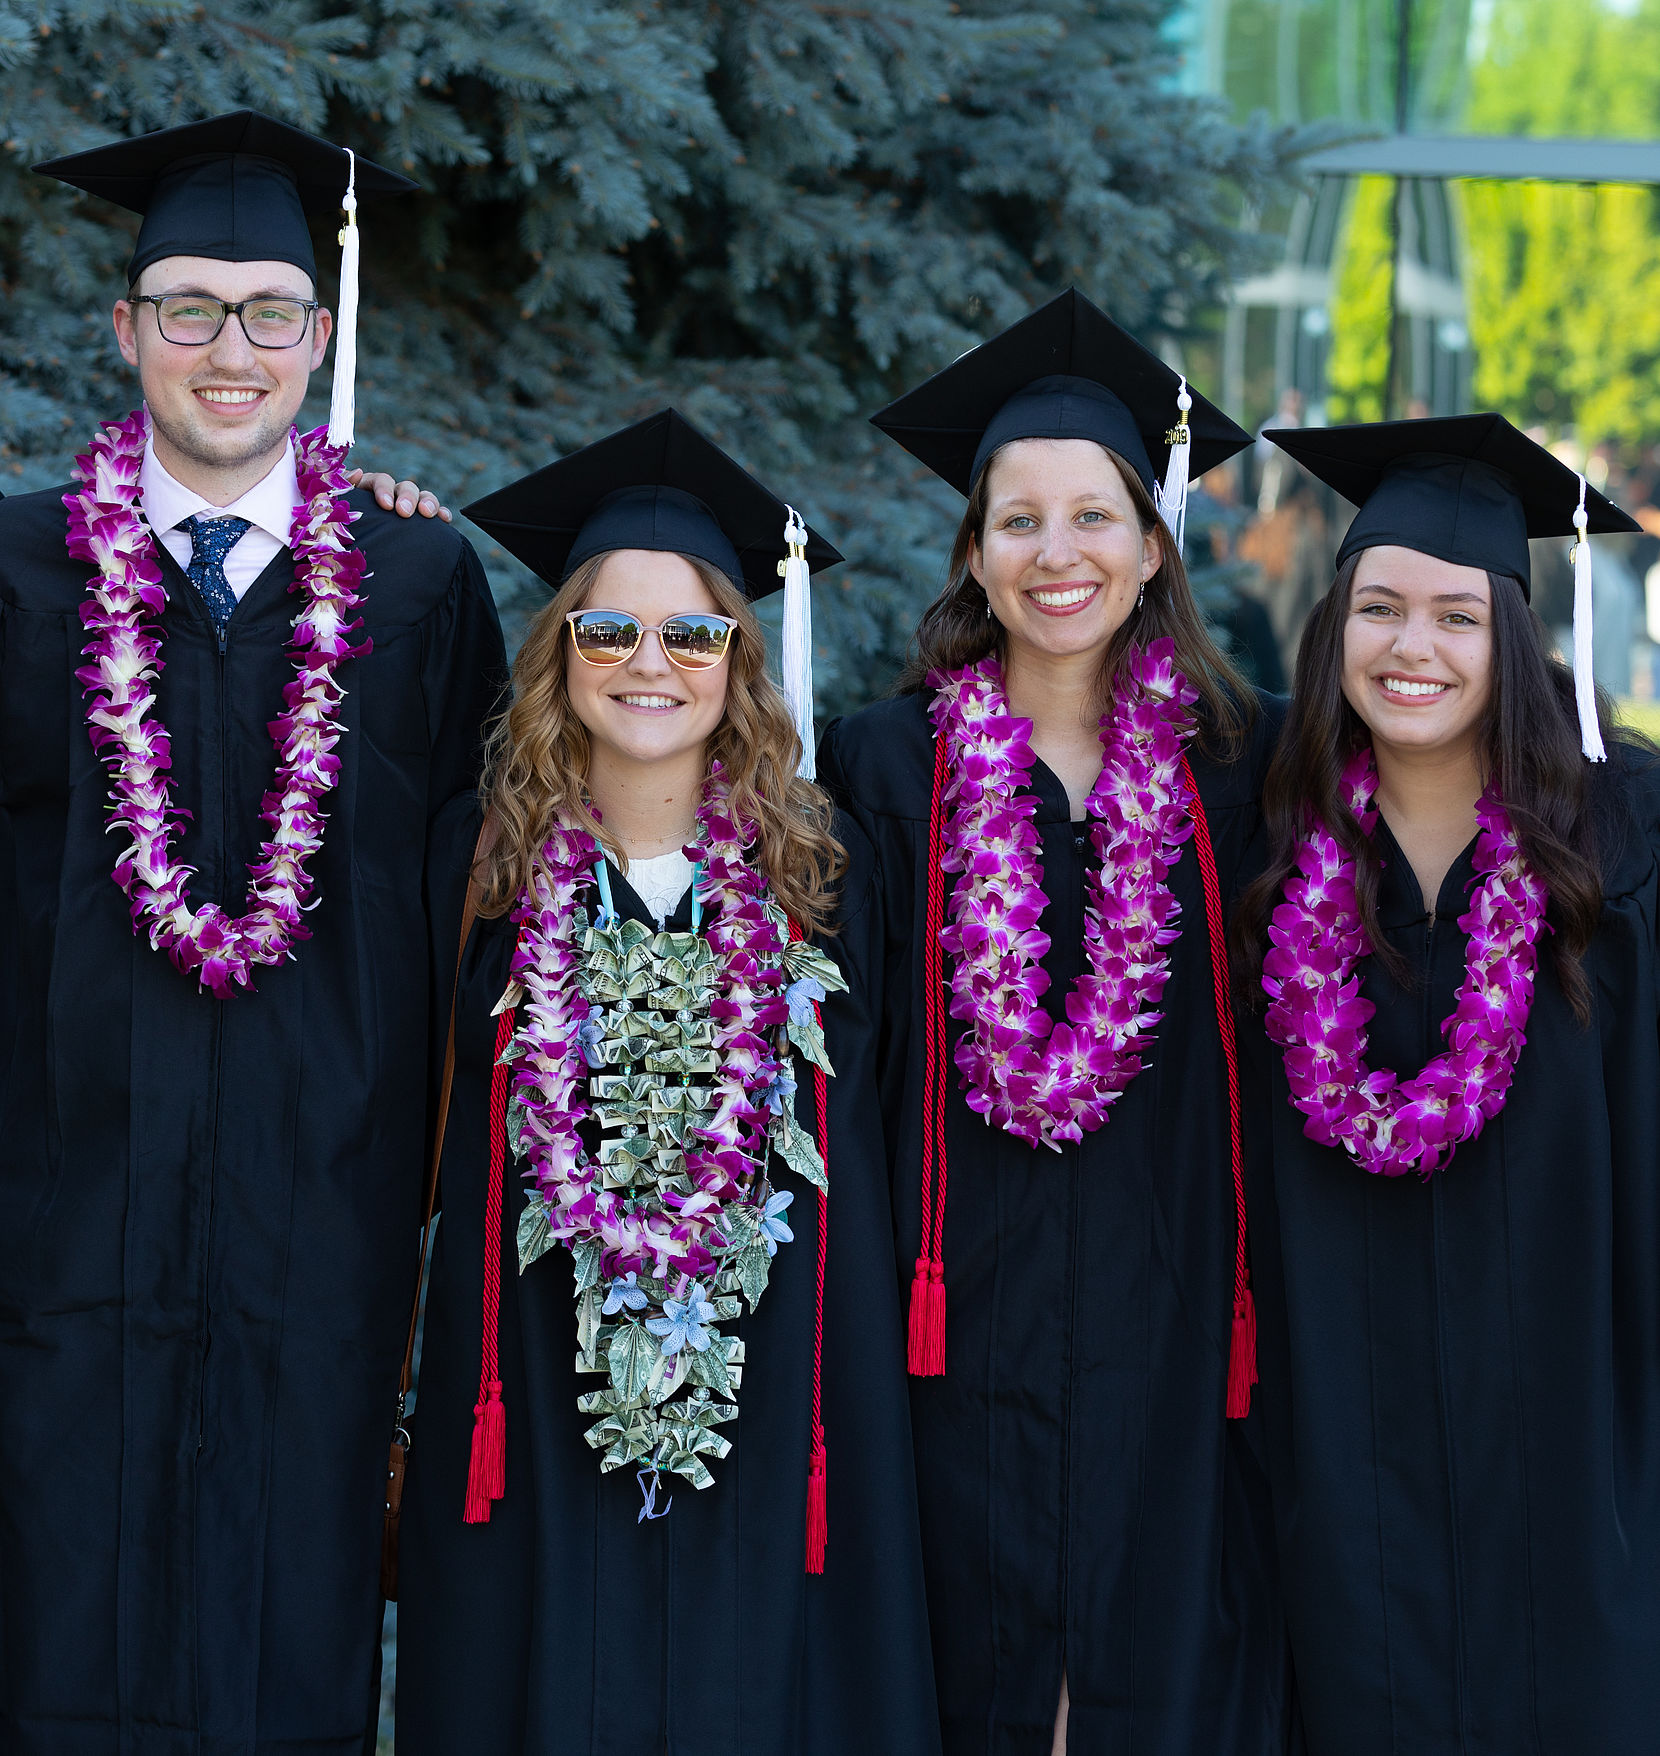 Four graduates in caps and gowns pose in a row, one man and three women.